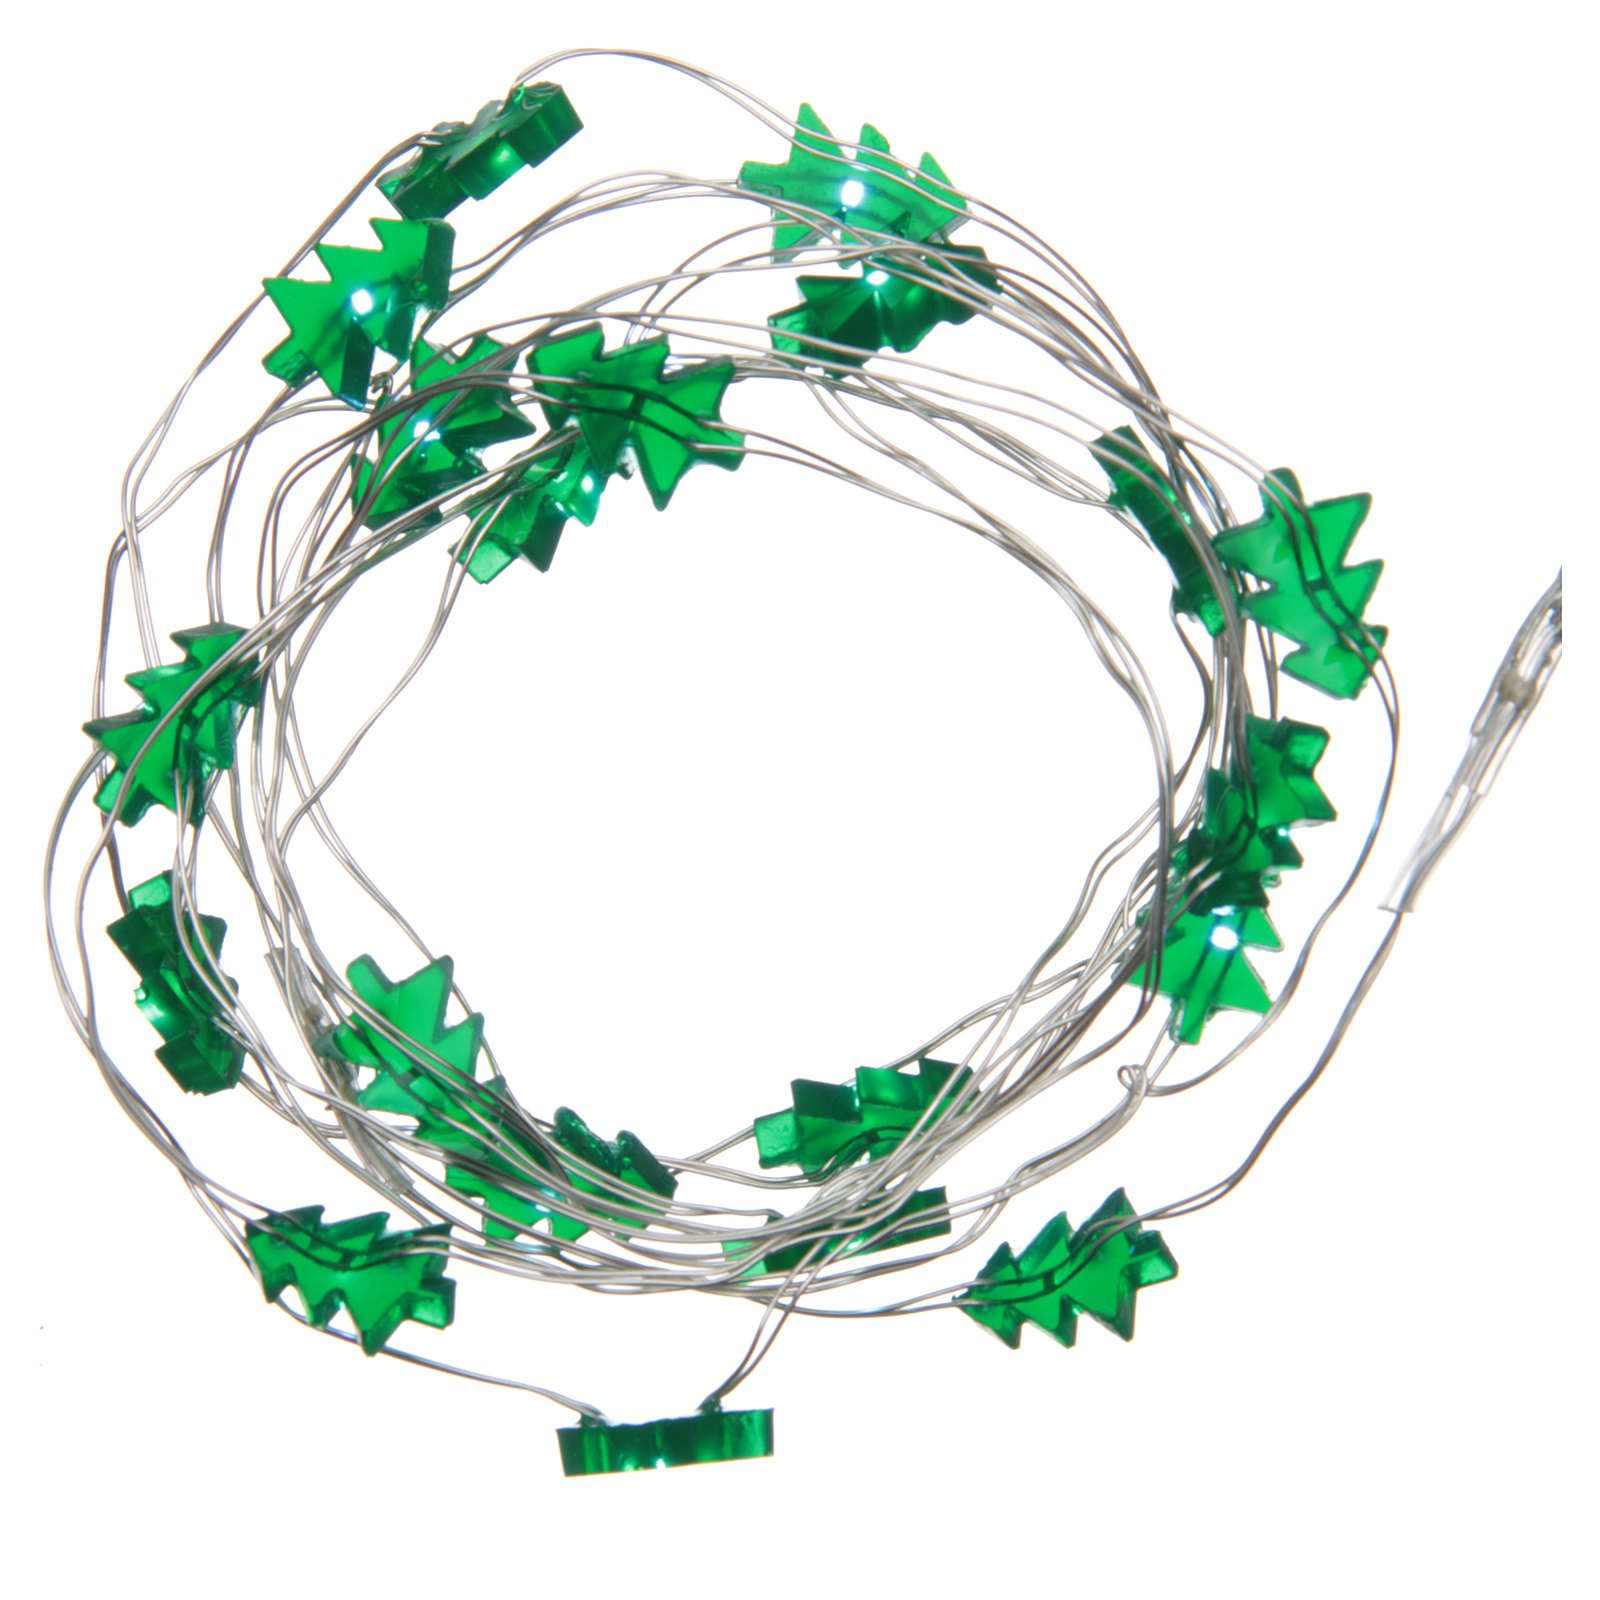 Fairy lights: 20 green LED lights, for indoor use 3